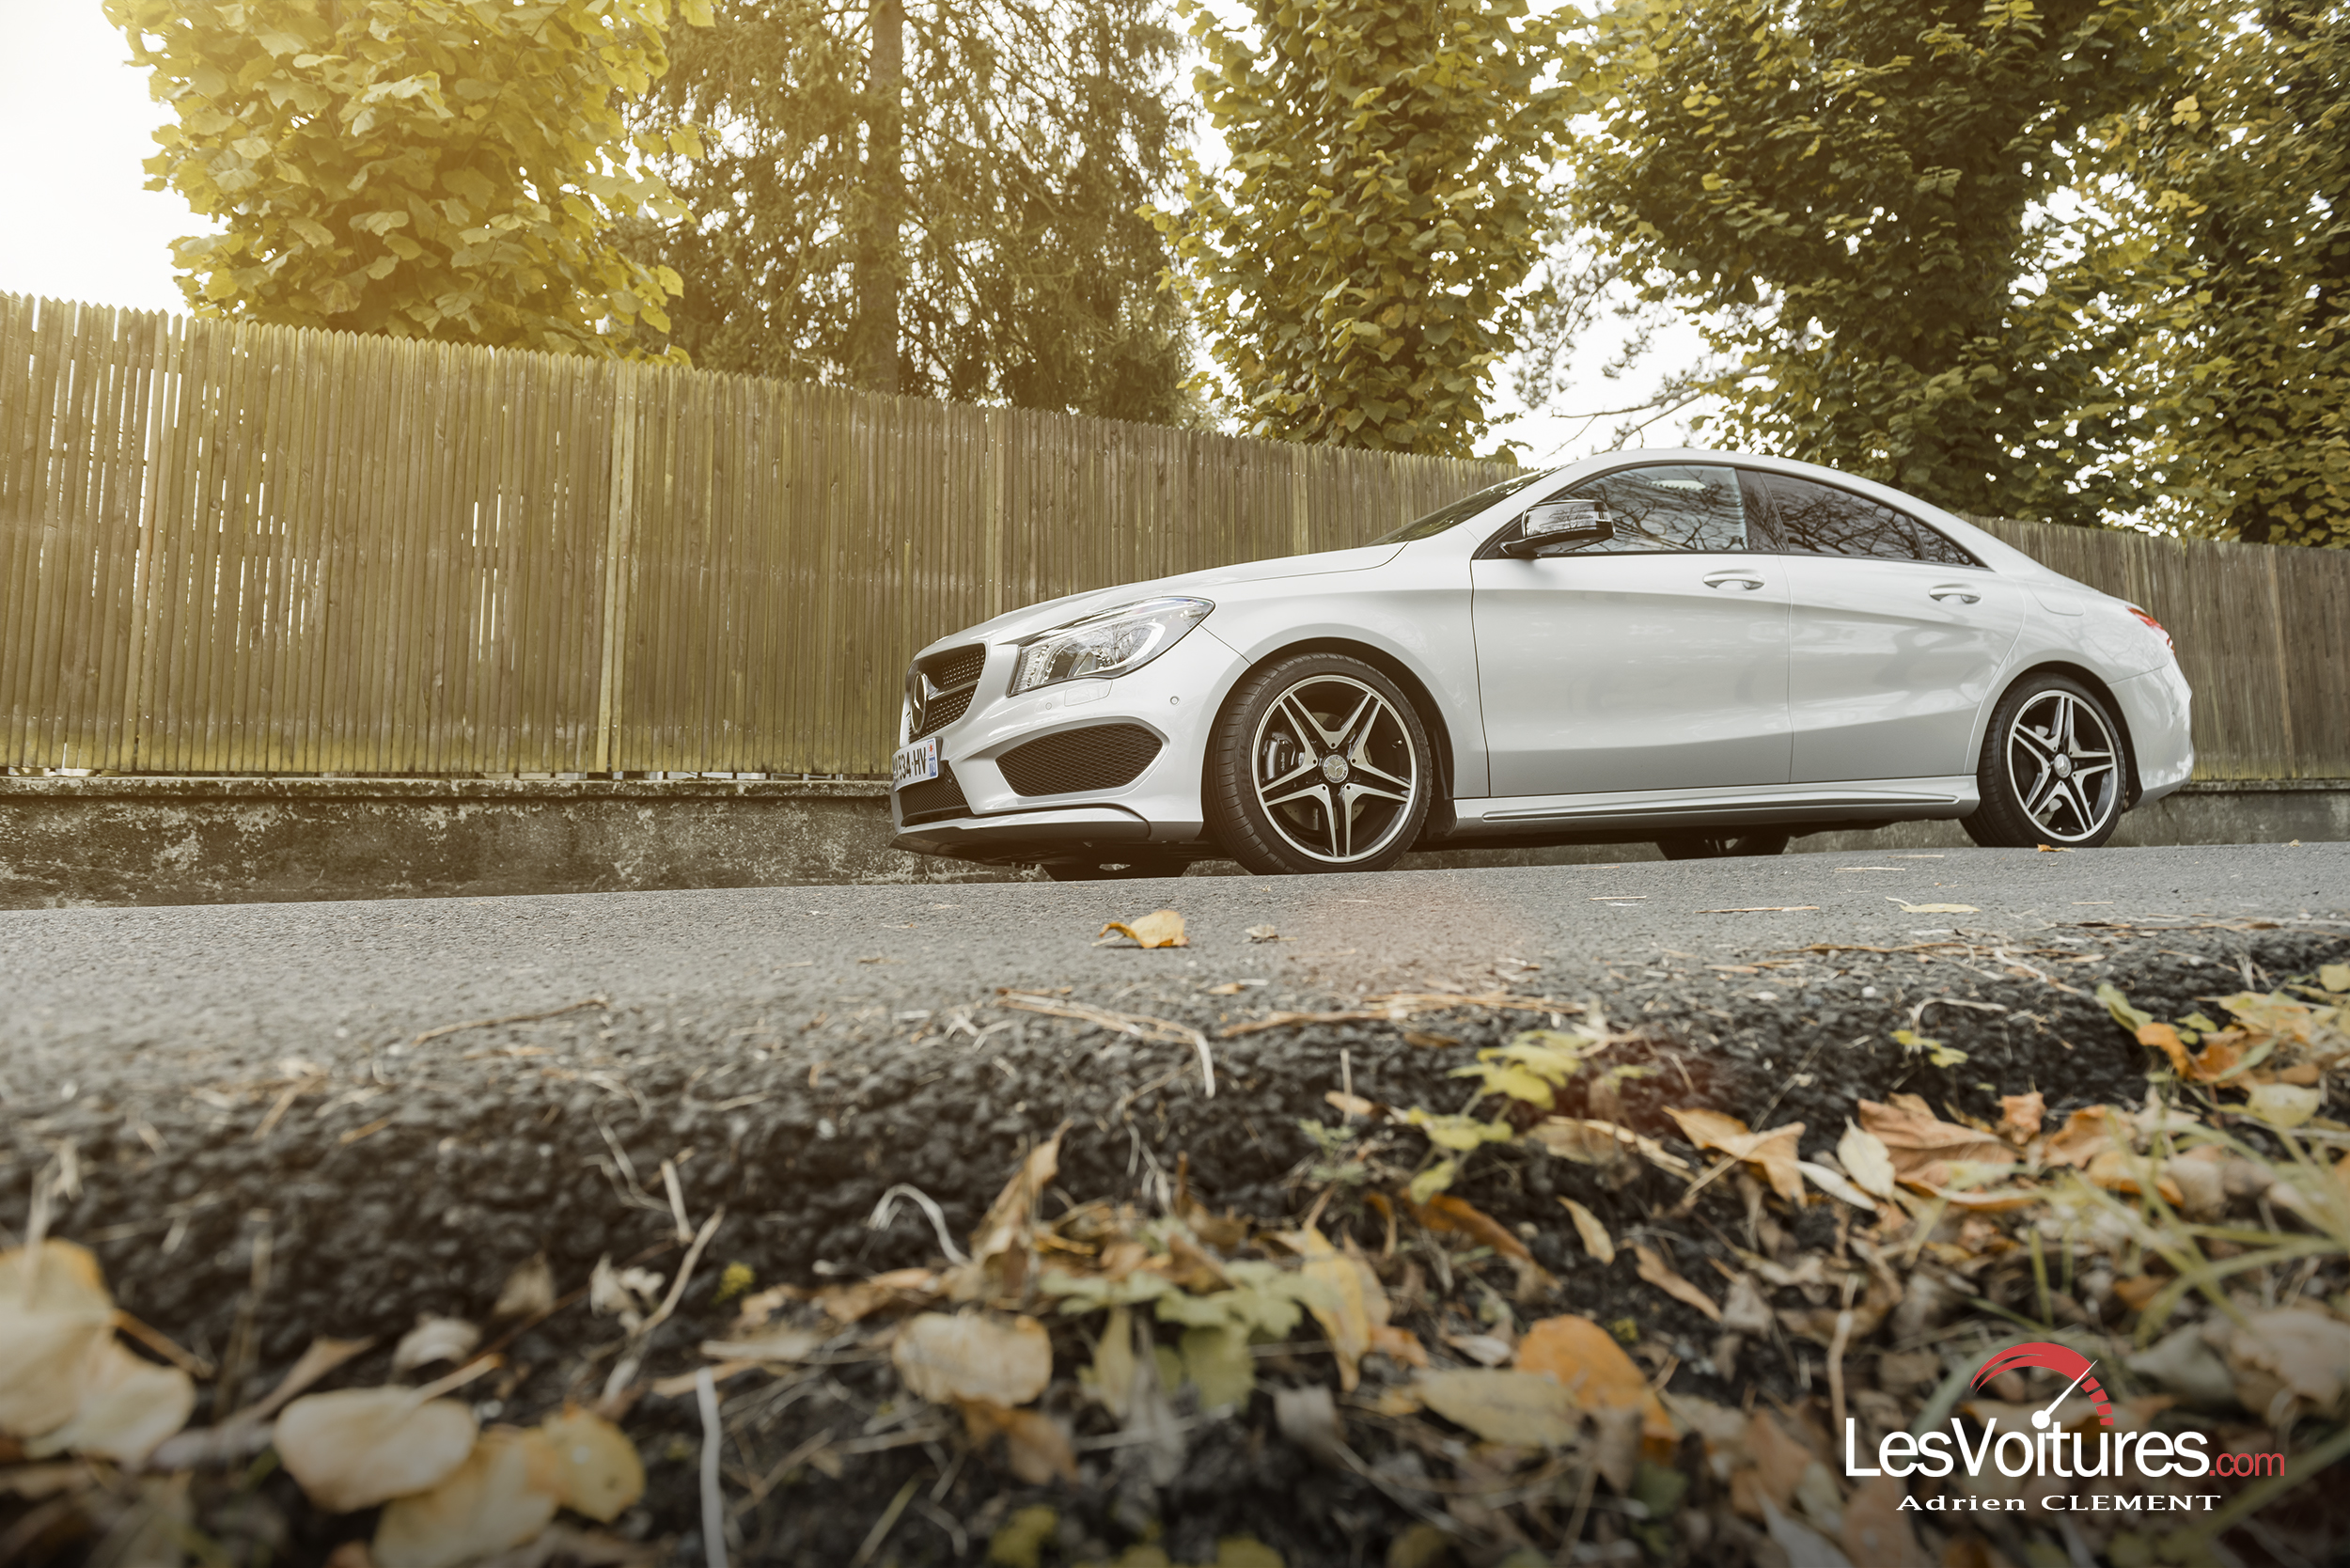 Adrien-Clement-Automotive-XTrems-Pics-Mercedes-Benz-CLA-LesVoitures